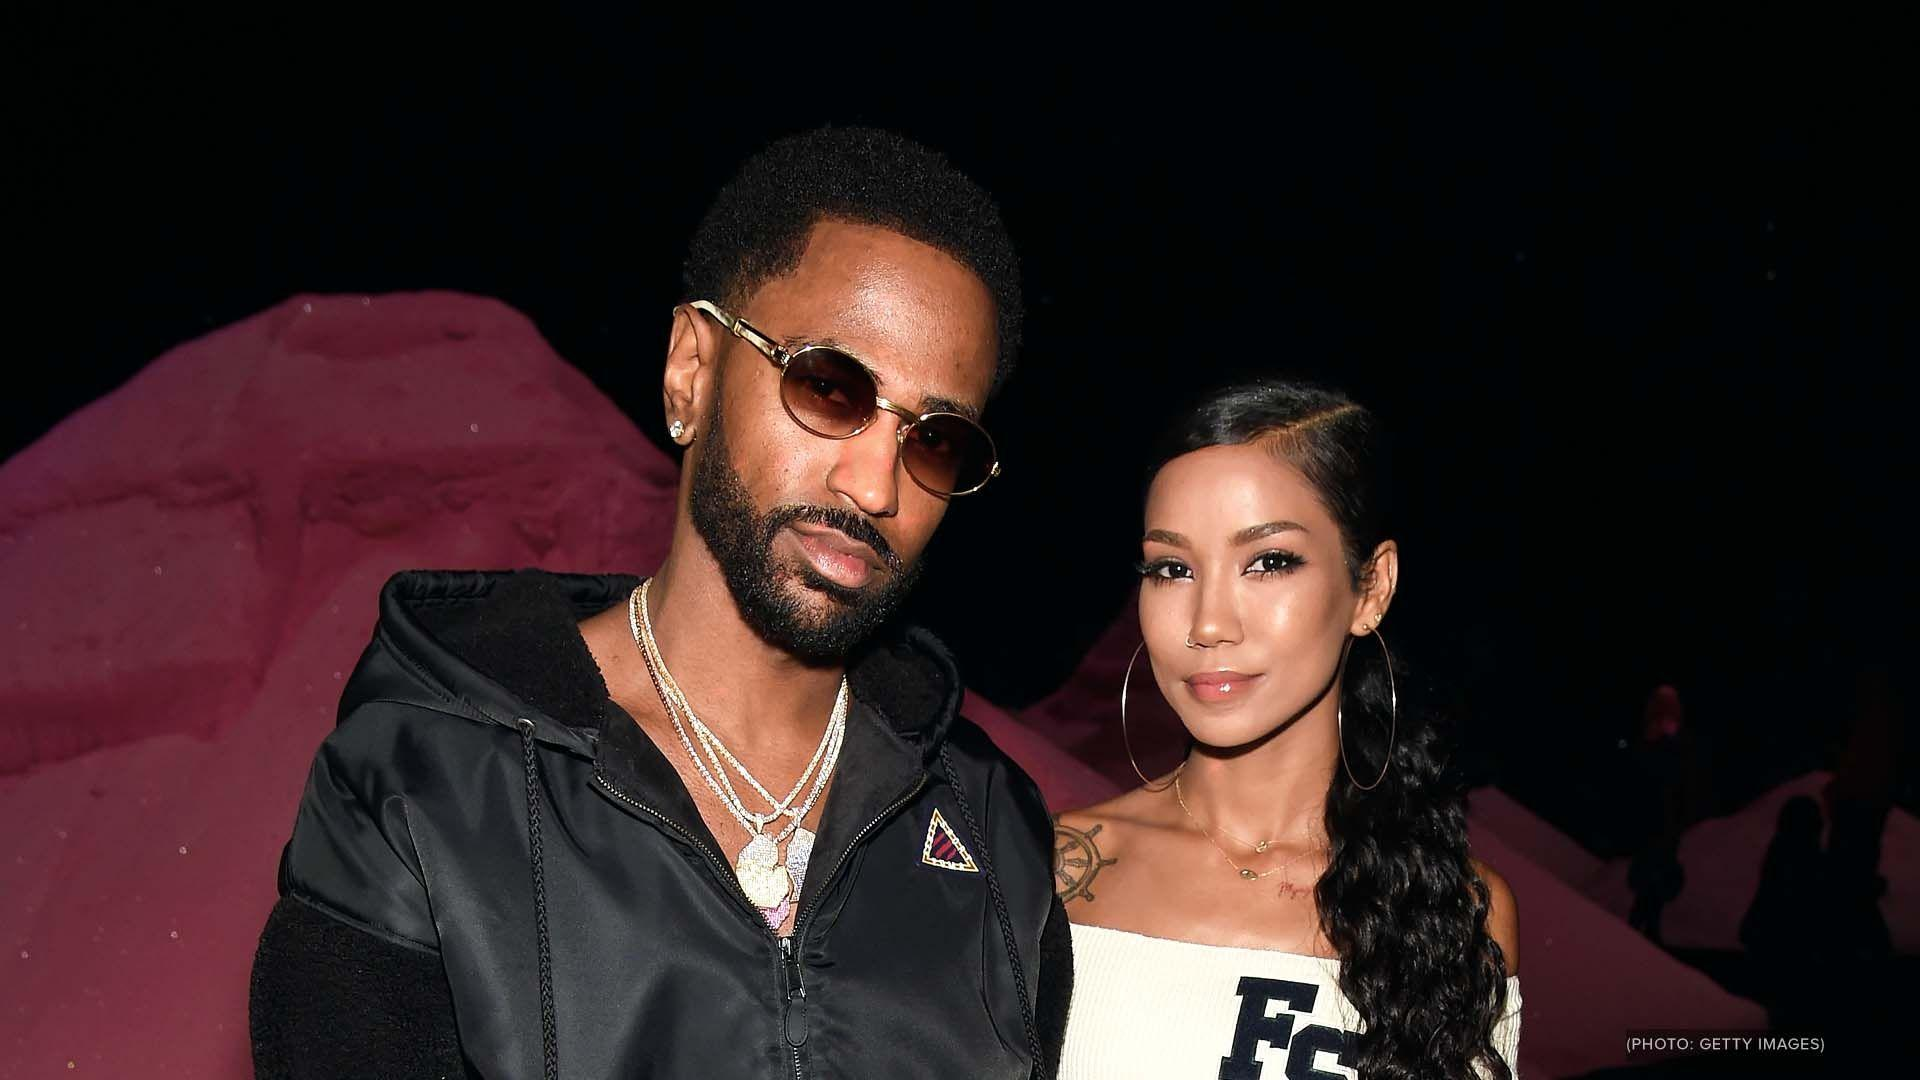 BET Breaks: Jhene Aiko Gets Tattoo of Big Sean's Face | Video ...